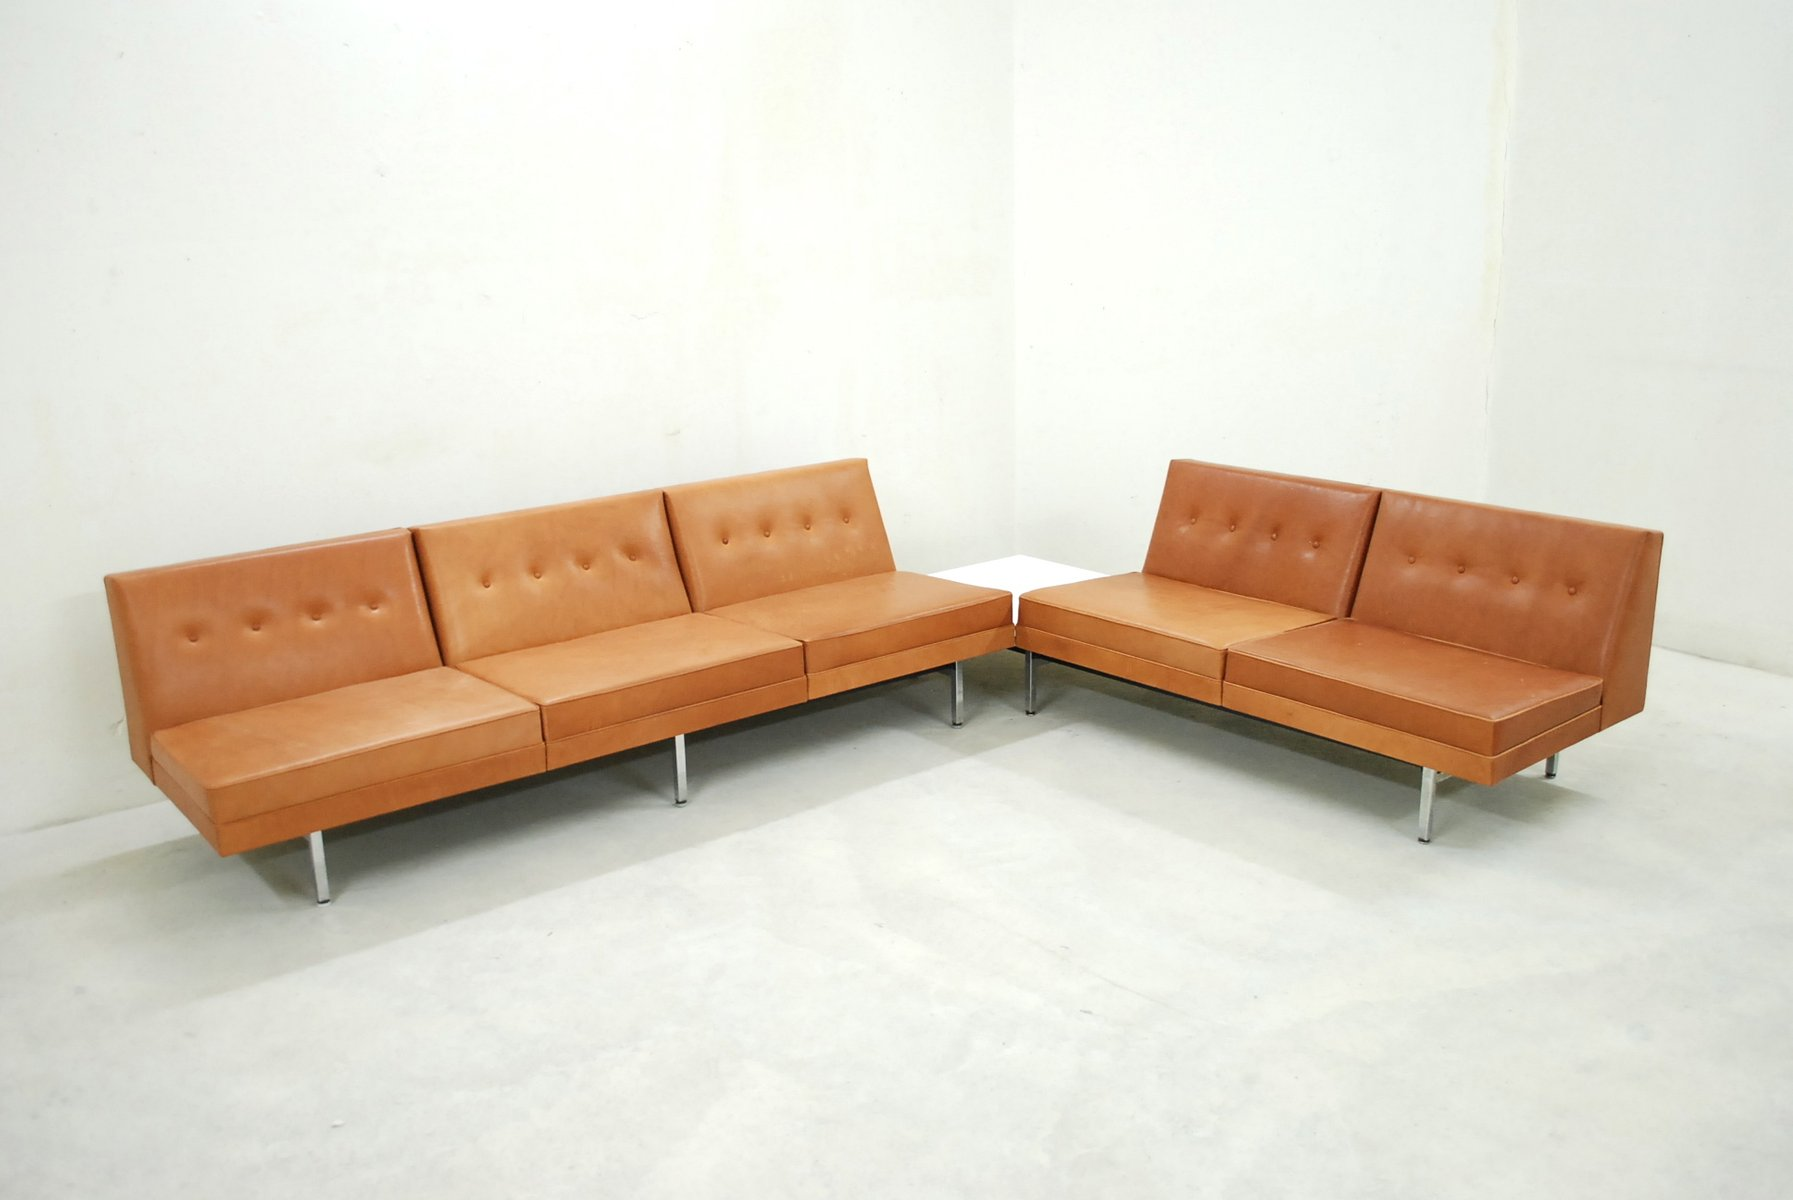 herman miller modular sofa replacing cushions cognac leather set by george nelson for